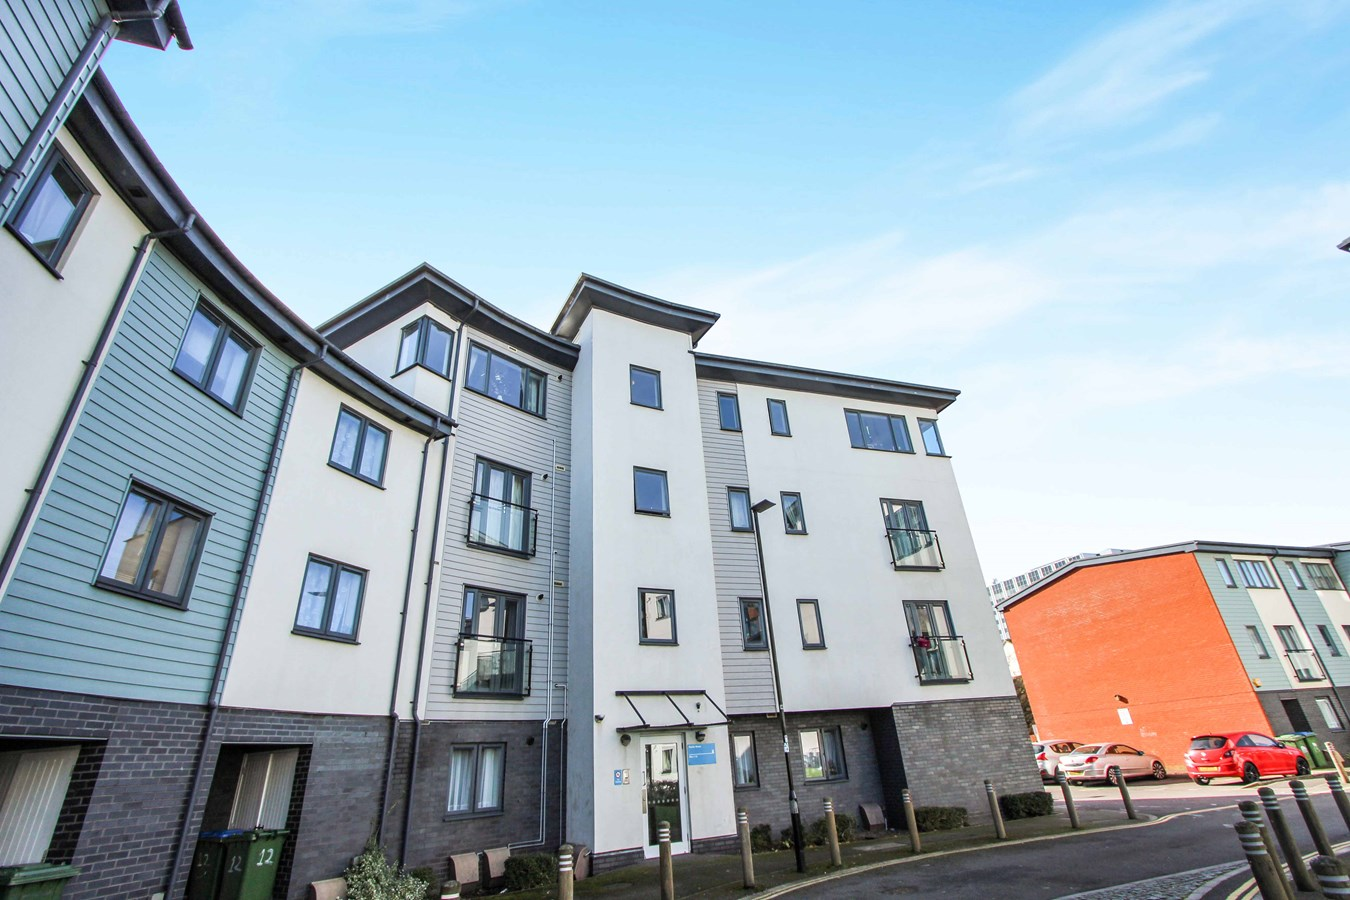 1 Bedroom Apartment For Sale In Southampton